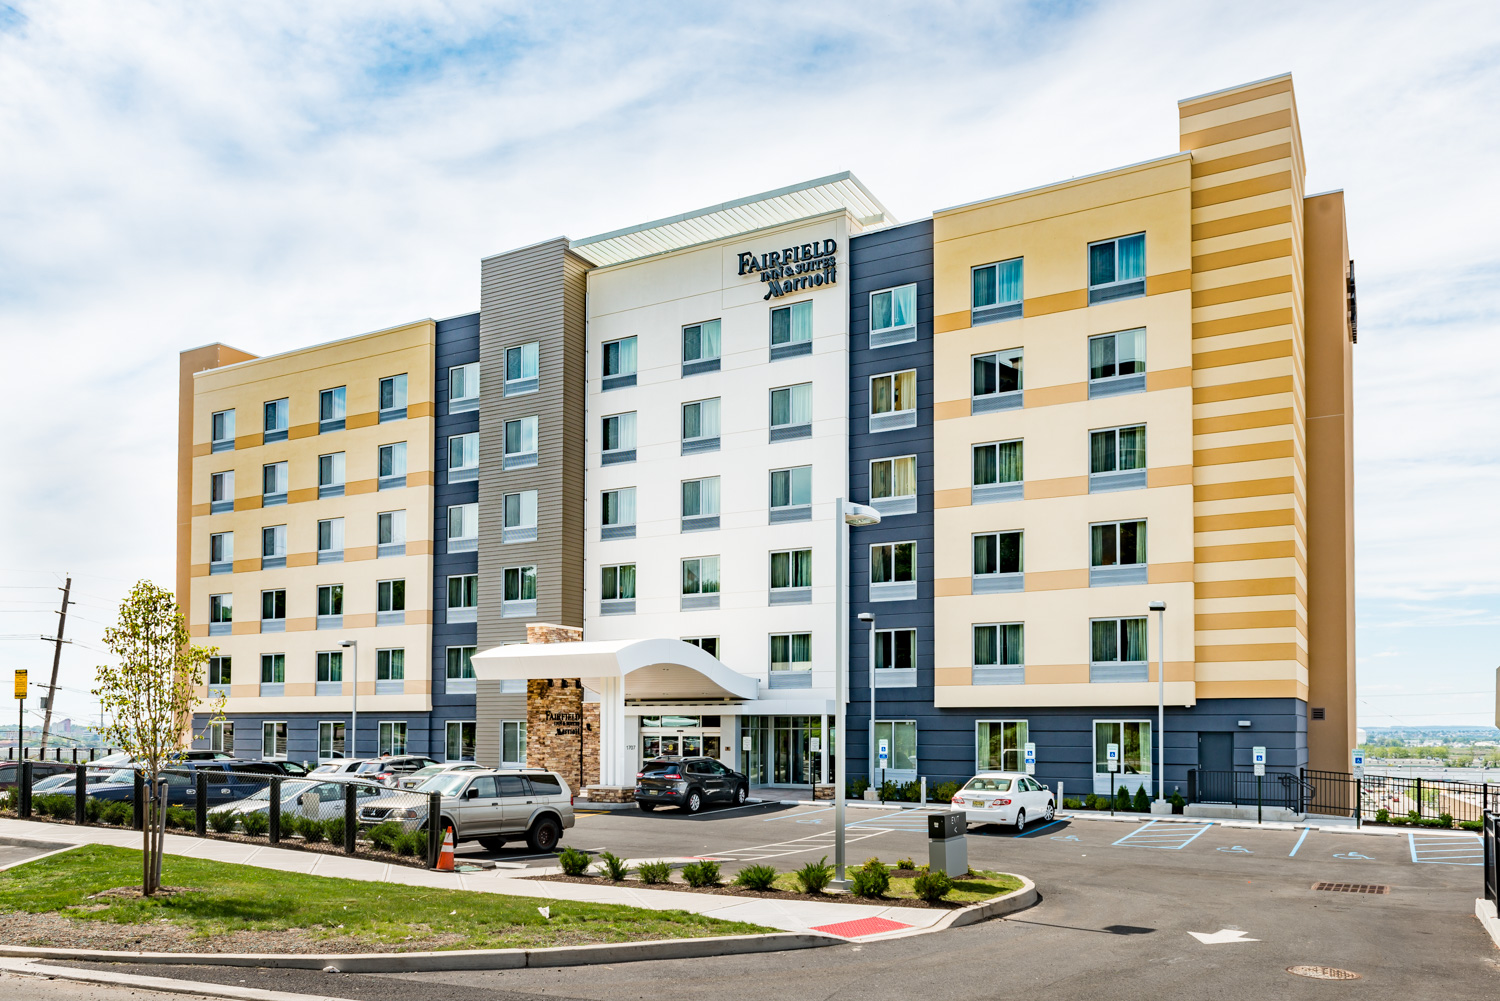 59-Fairfield Inn - North Bergen.jpg